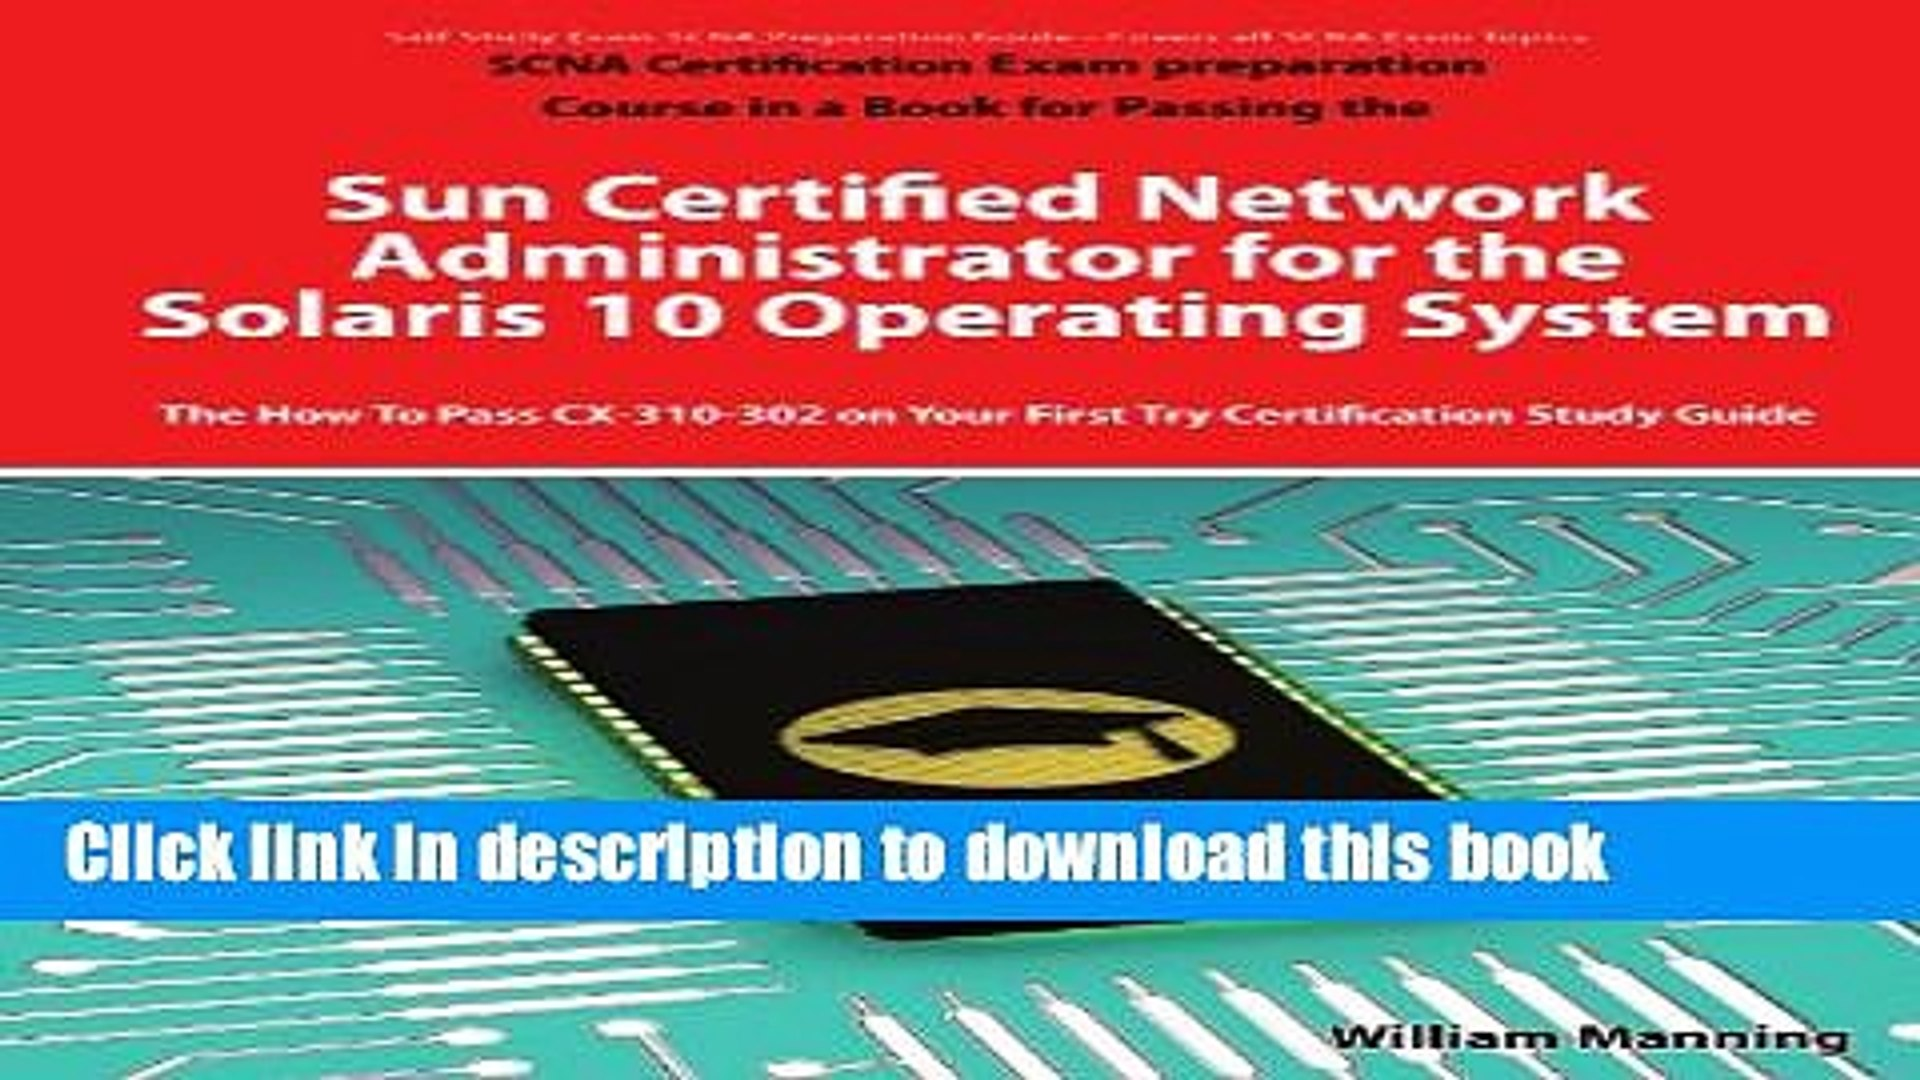 Read Sun Certified Network Administrator for the Solaris 10 Operating  System Certification Exam